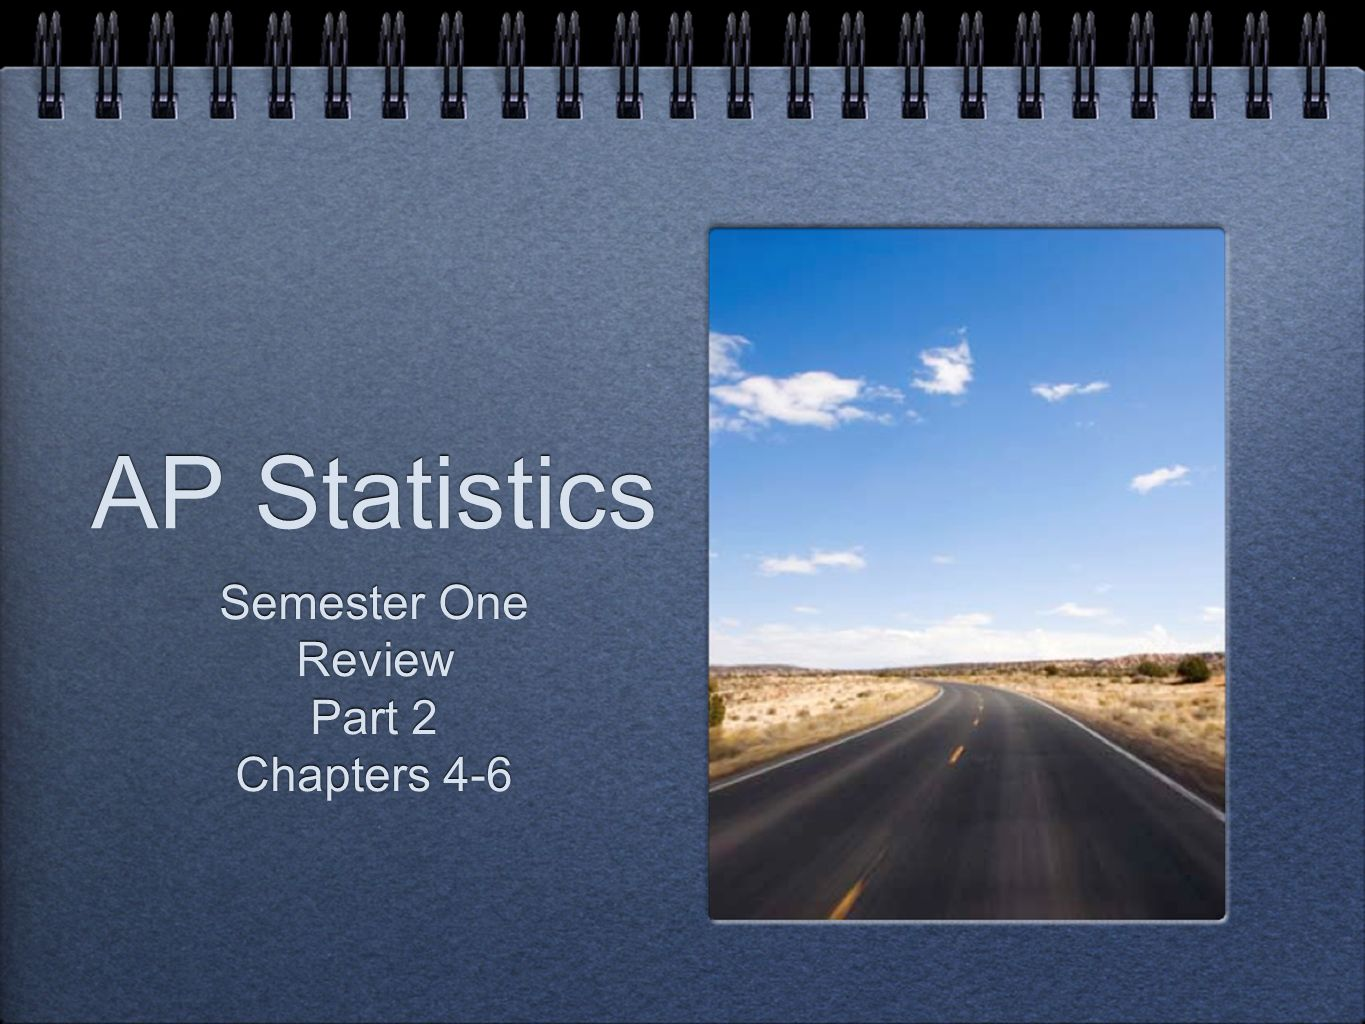 ch 1 ch 5 summative review ap statistics Start studying exam 1 himt 350 learn vocabulary, terms, and more with flashcards, games, and other study tools  ch 1-ch 5 summative review ap statistics.